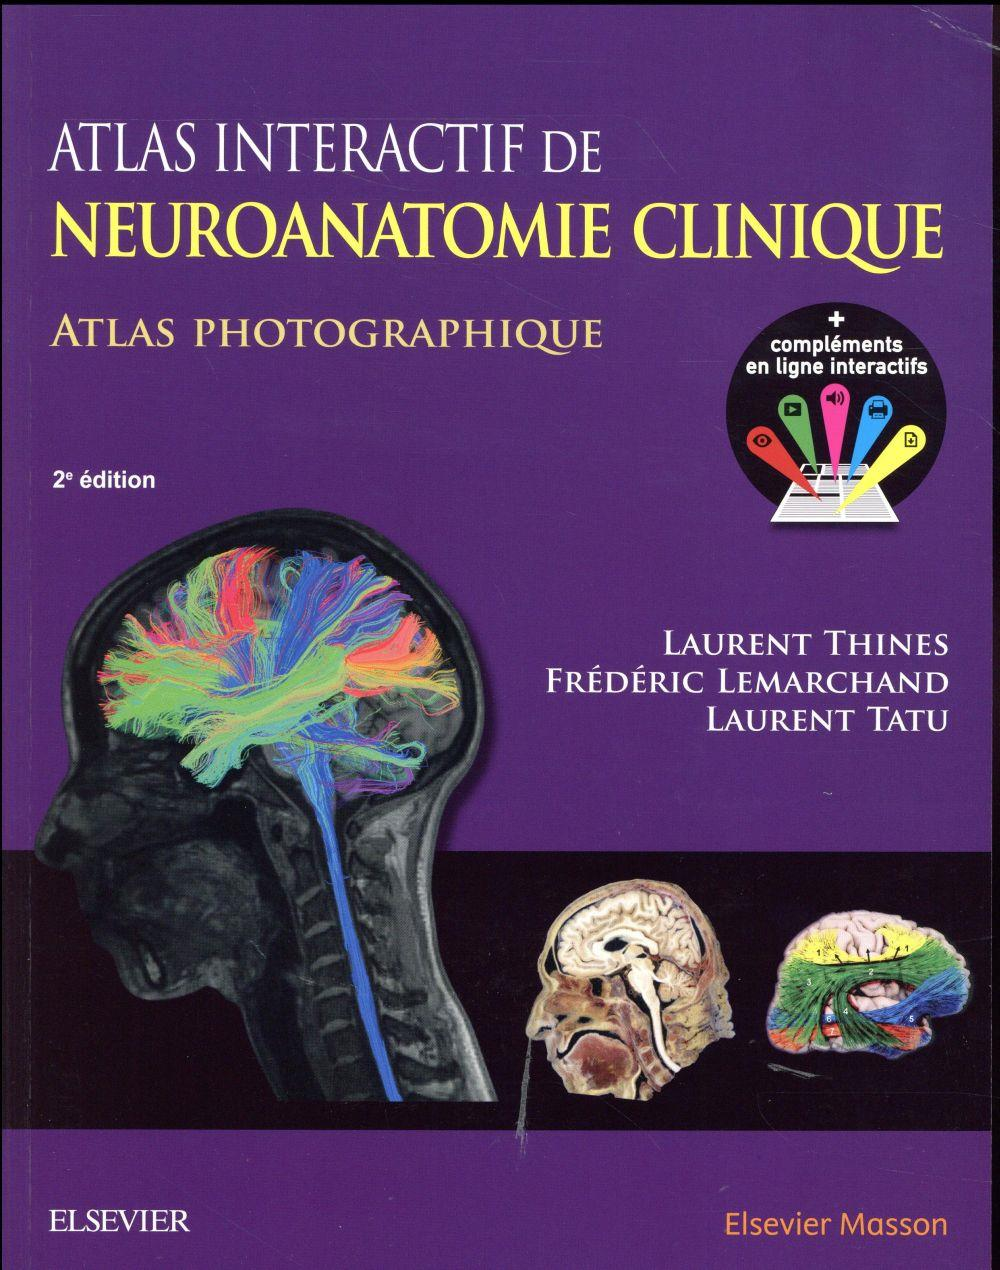 Atlas interactif de neuroanatomie clinique (2e édition)  - Collectif